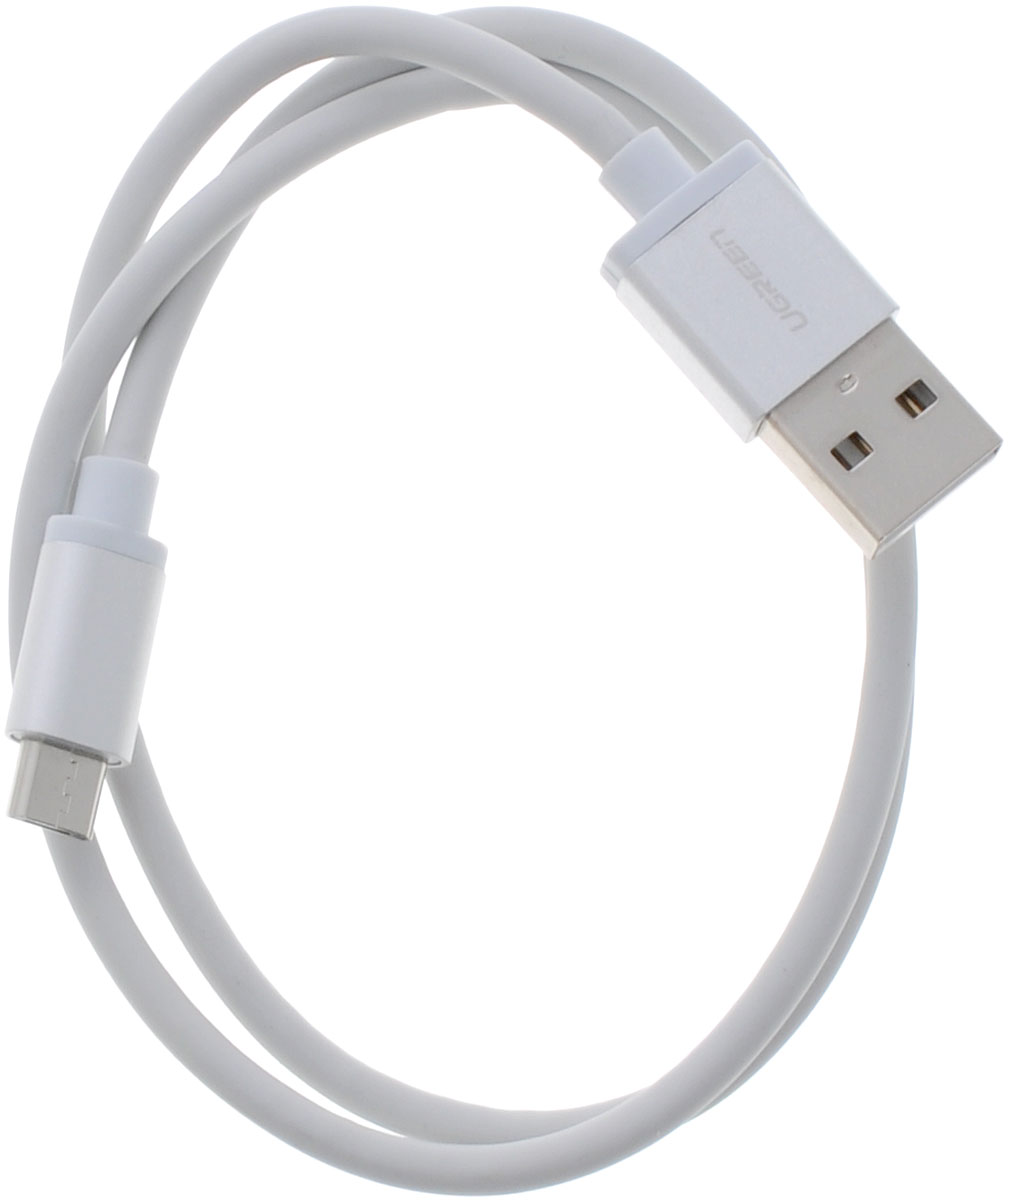 Ugreen UG-10828, White Silver кабель microUSB-USB 0.5 м ugreen ug 20727 white кабель usb 2 0 apple lightning 0 5 м